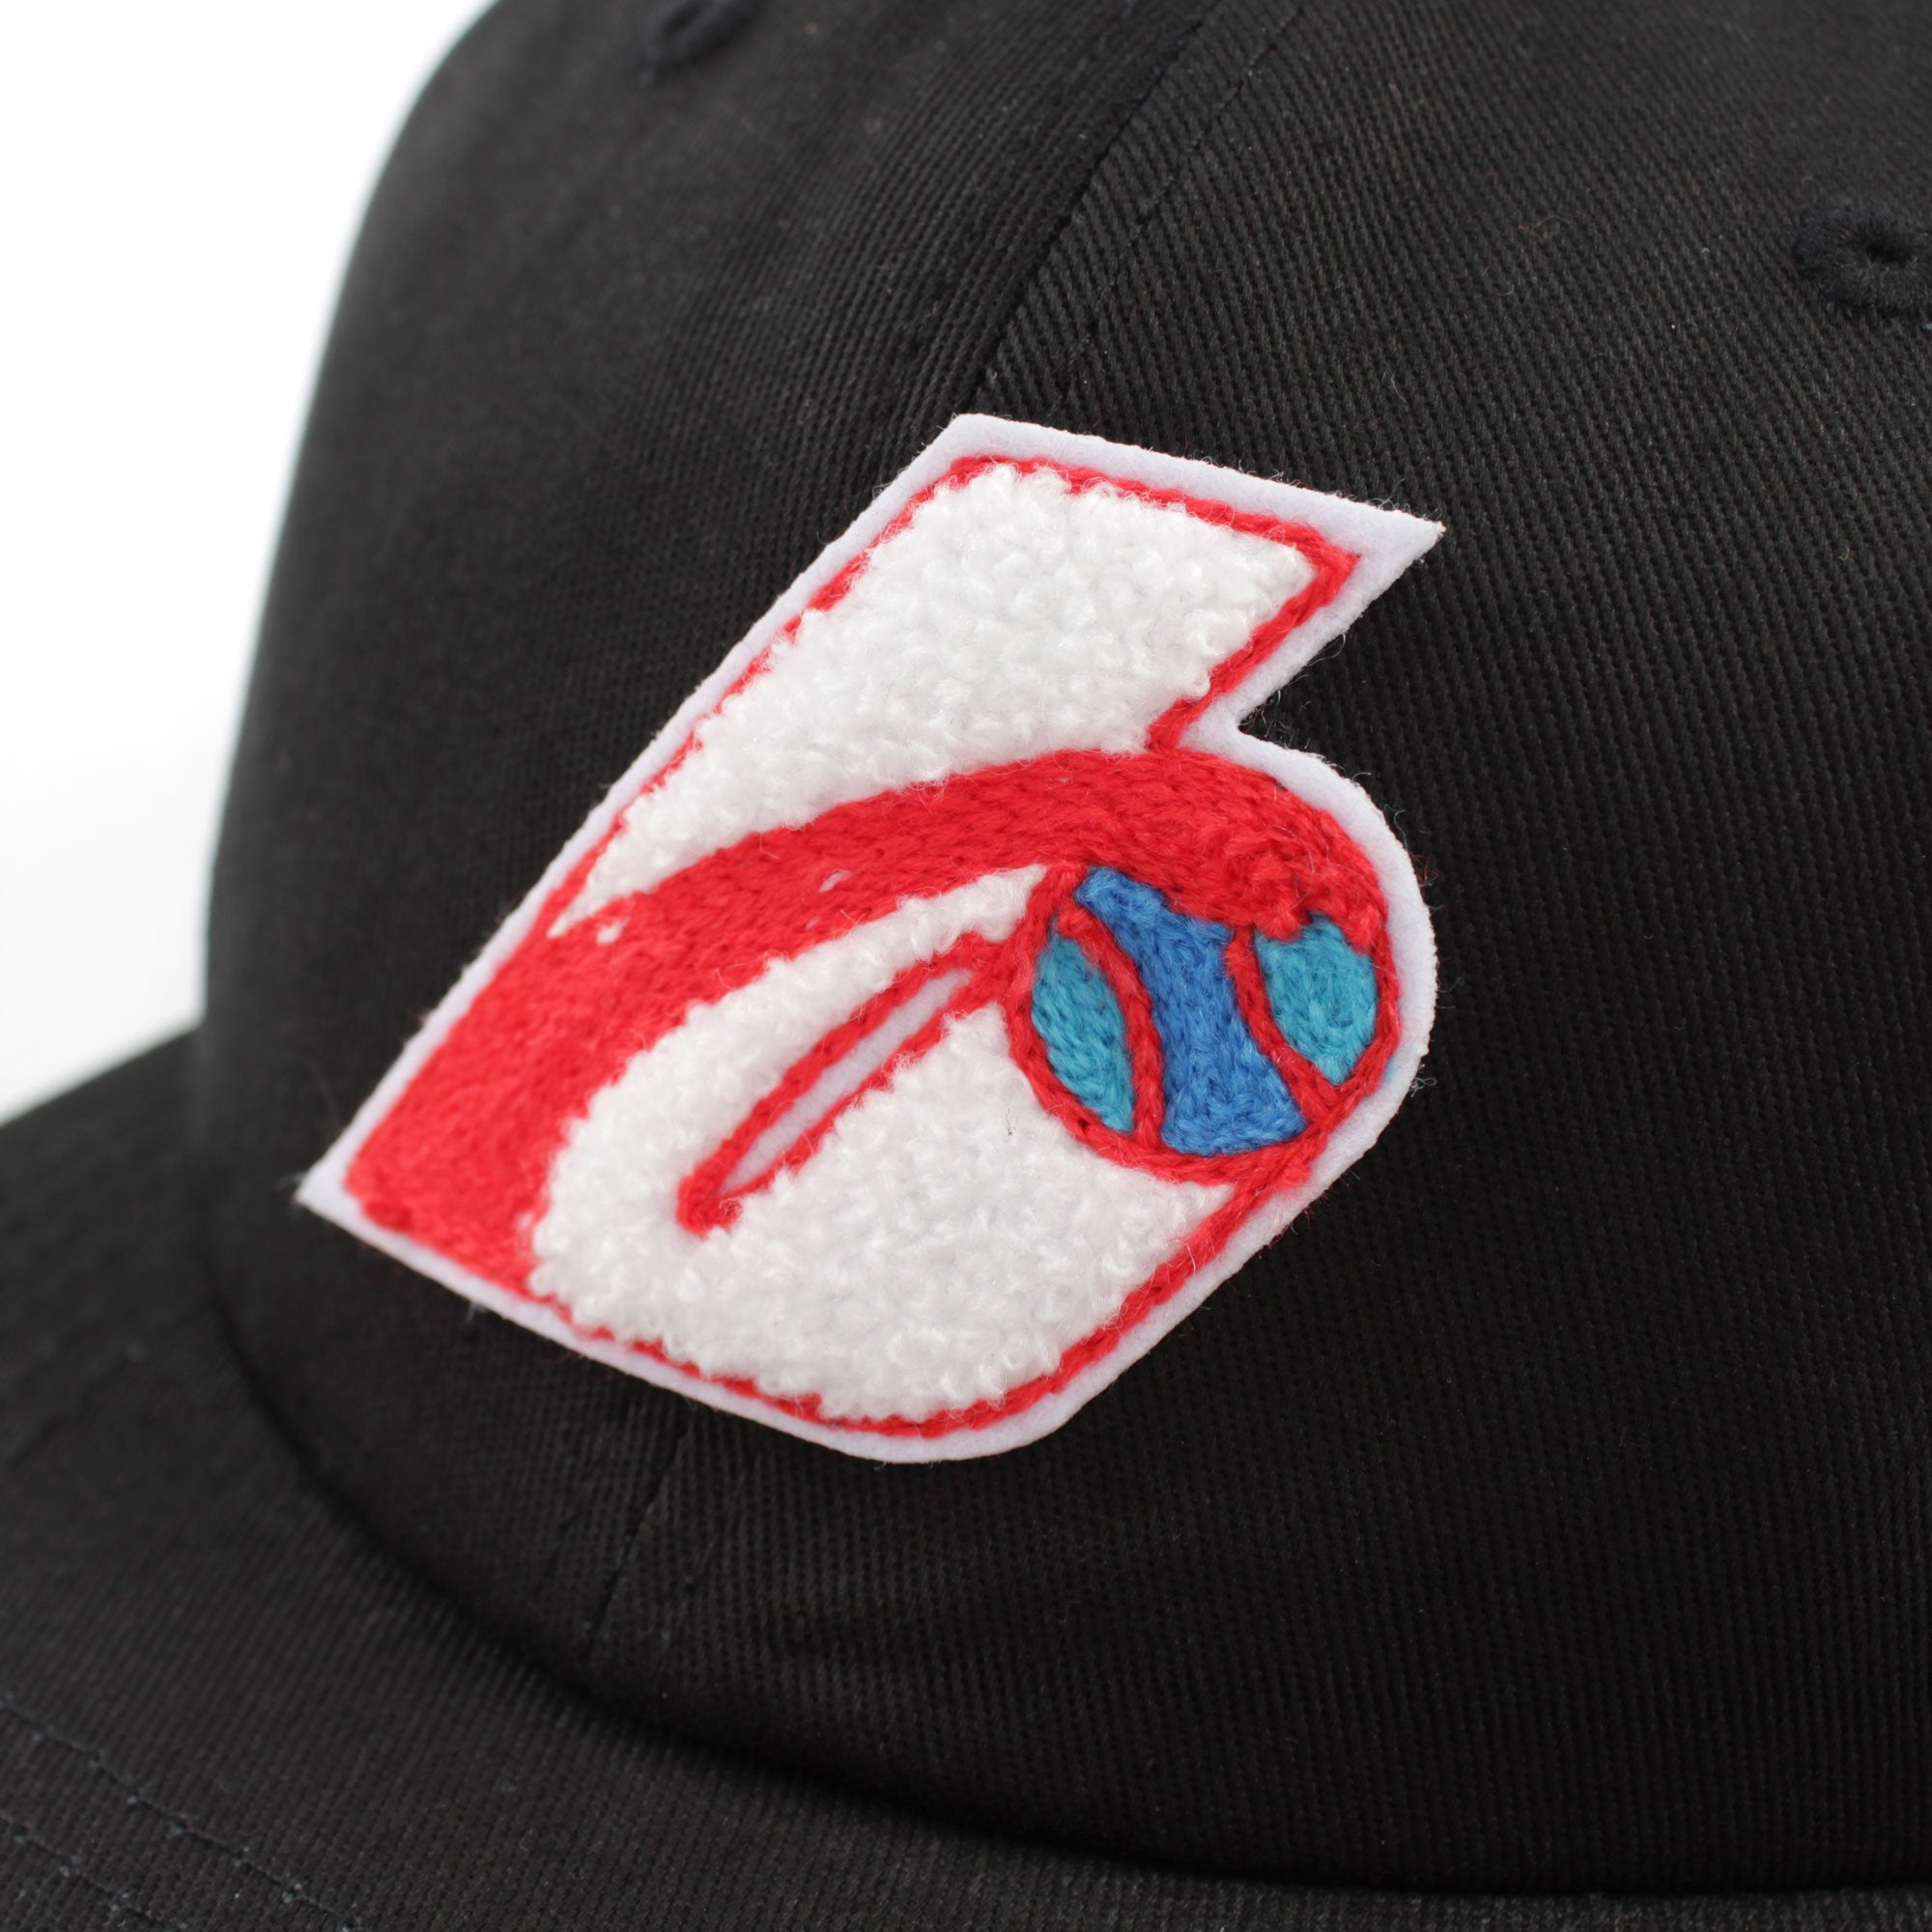 Beyond Ball Cap Product Photo #2